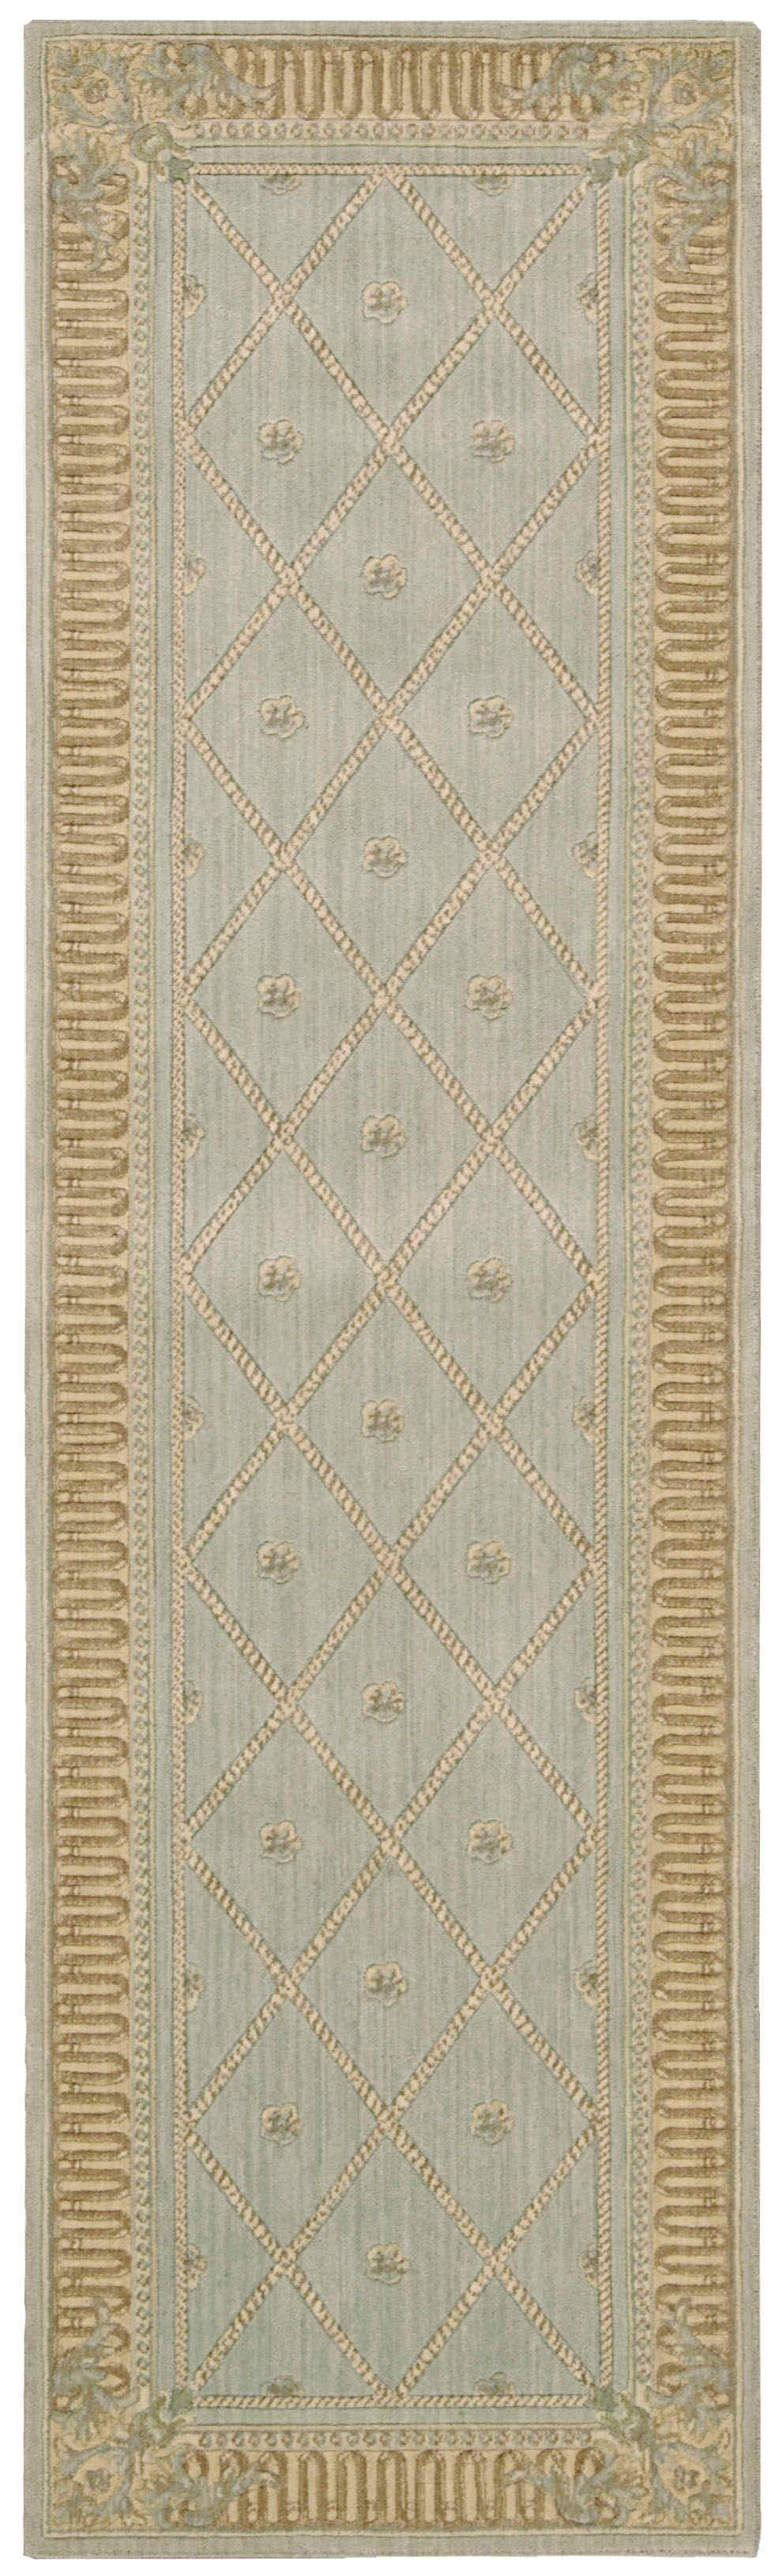 NOURISON ASHTON HOUSE SURF AREA RUG